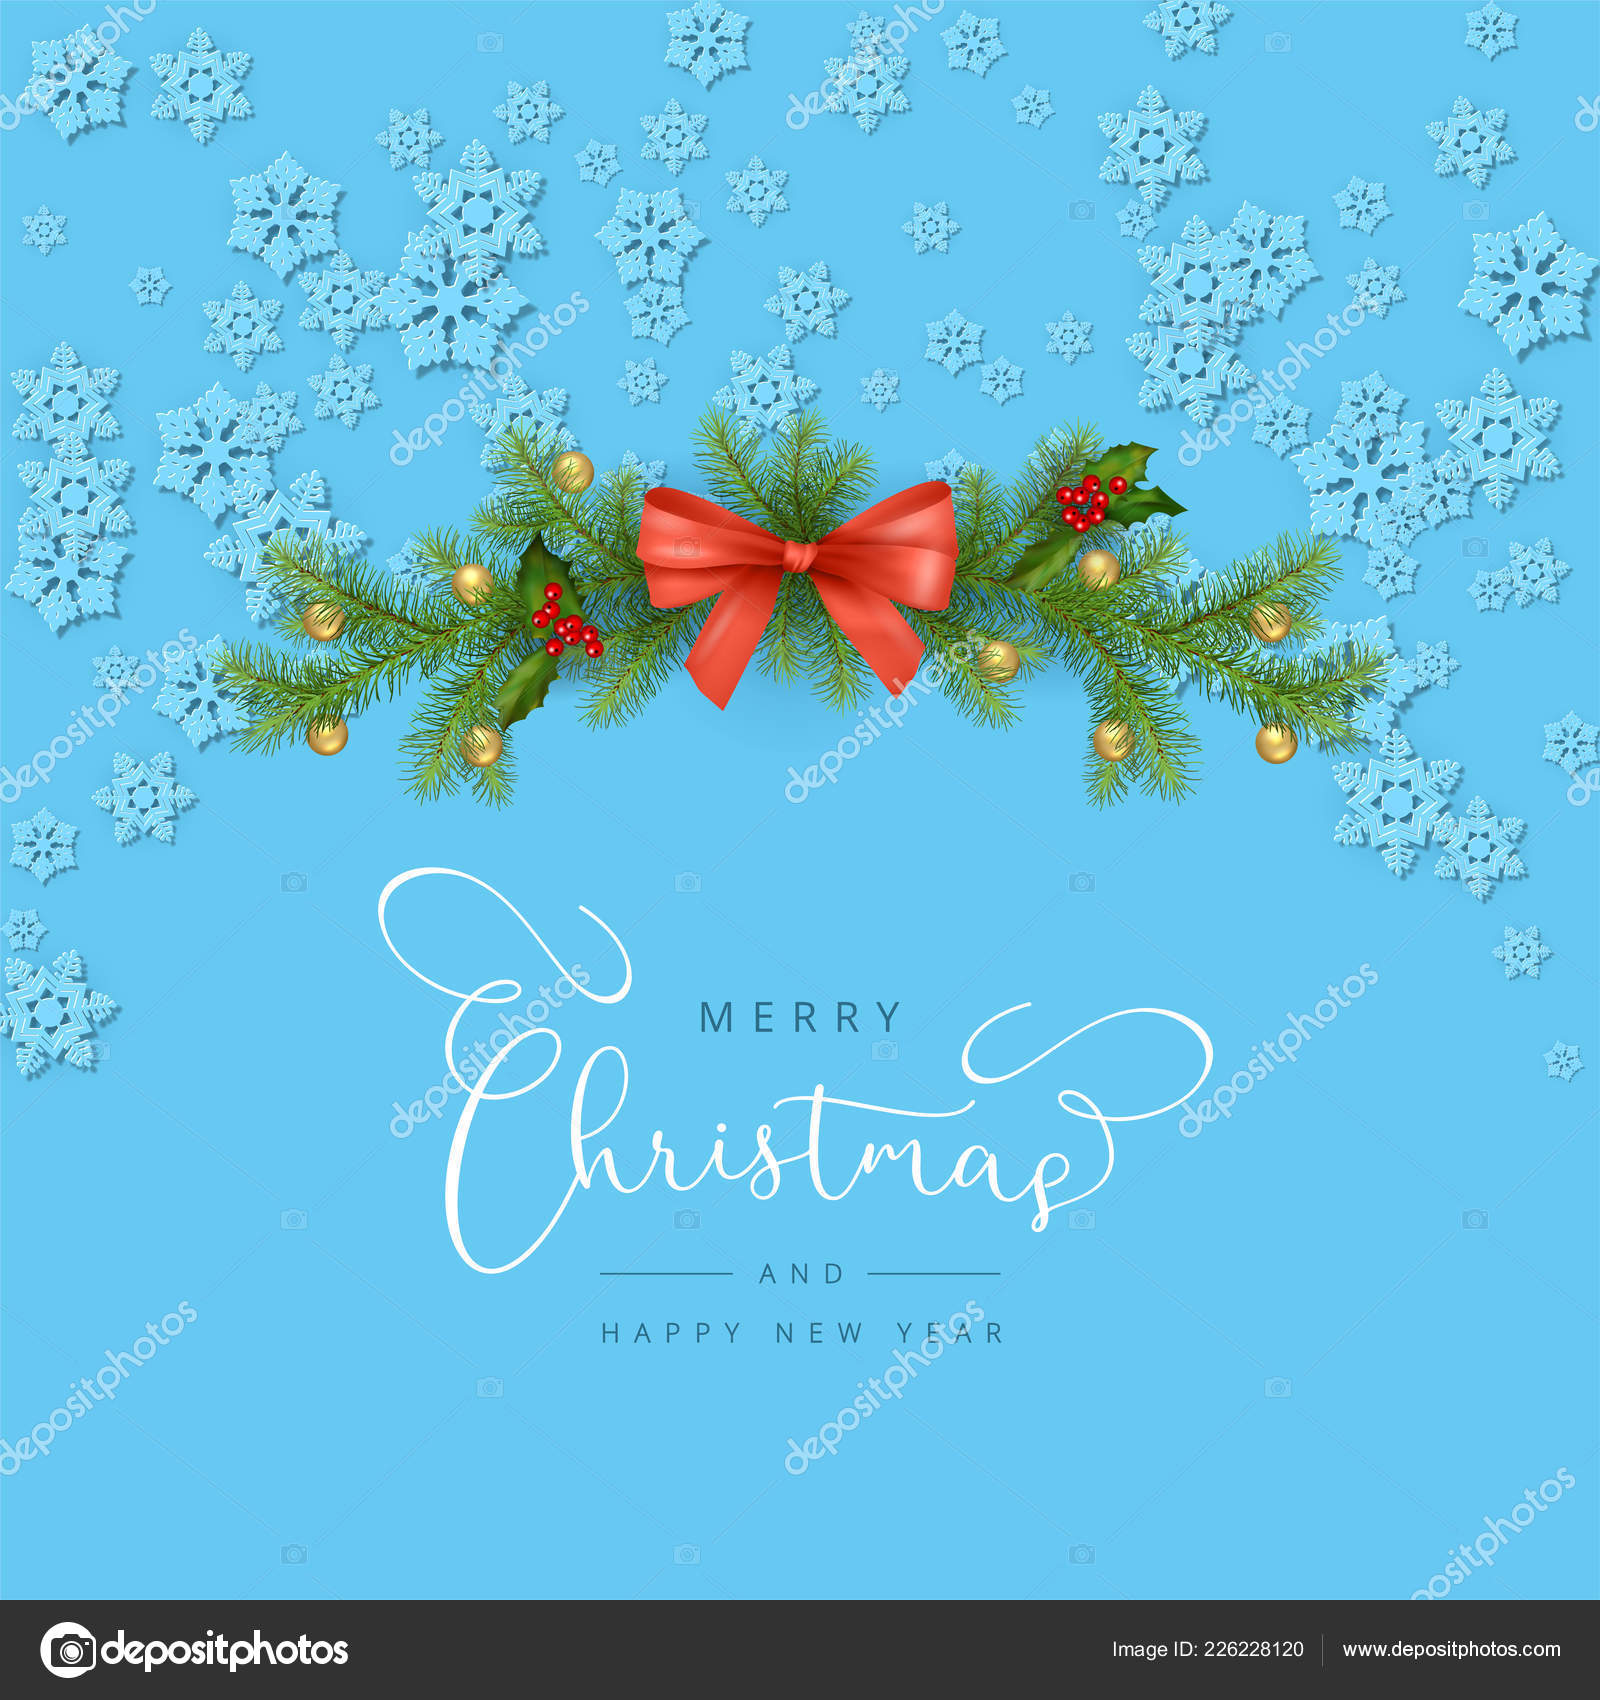 merry christmas new year greeting card christmas composition festive decorations stock vector